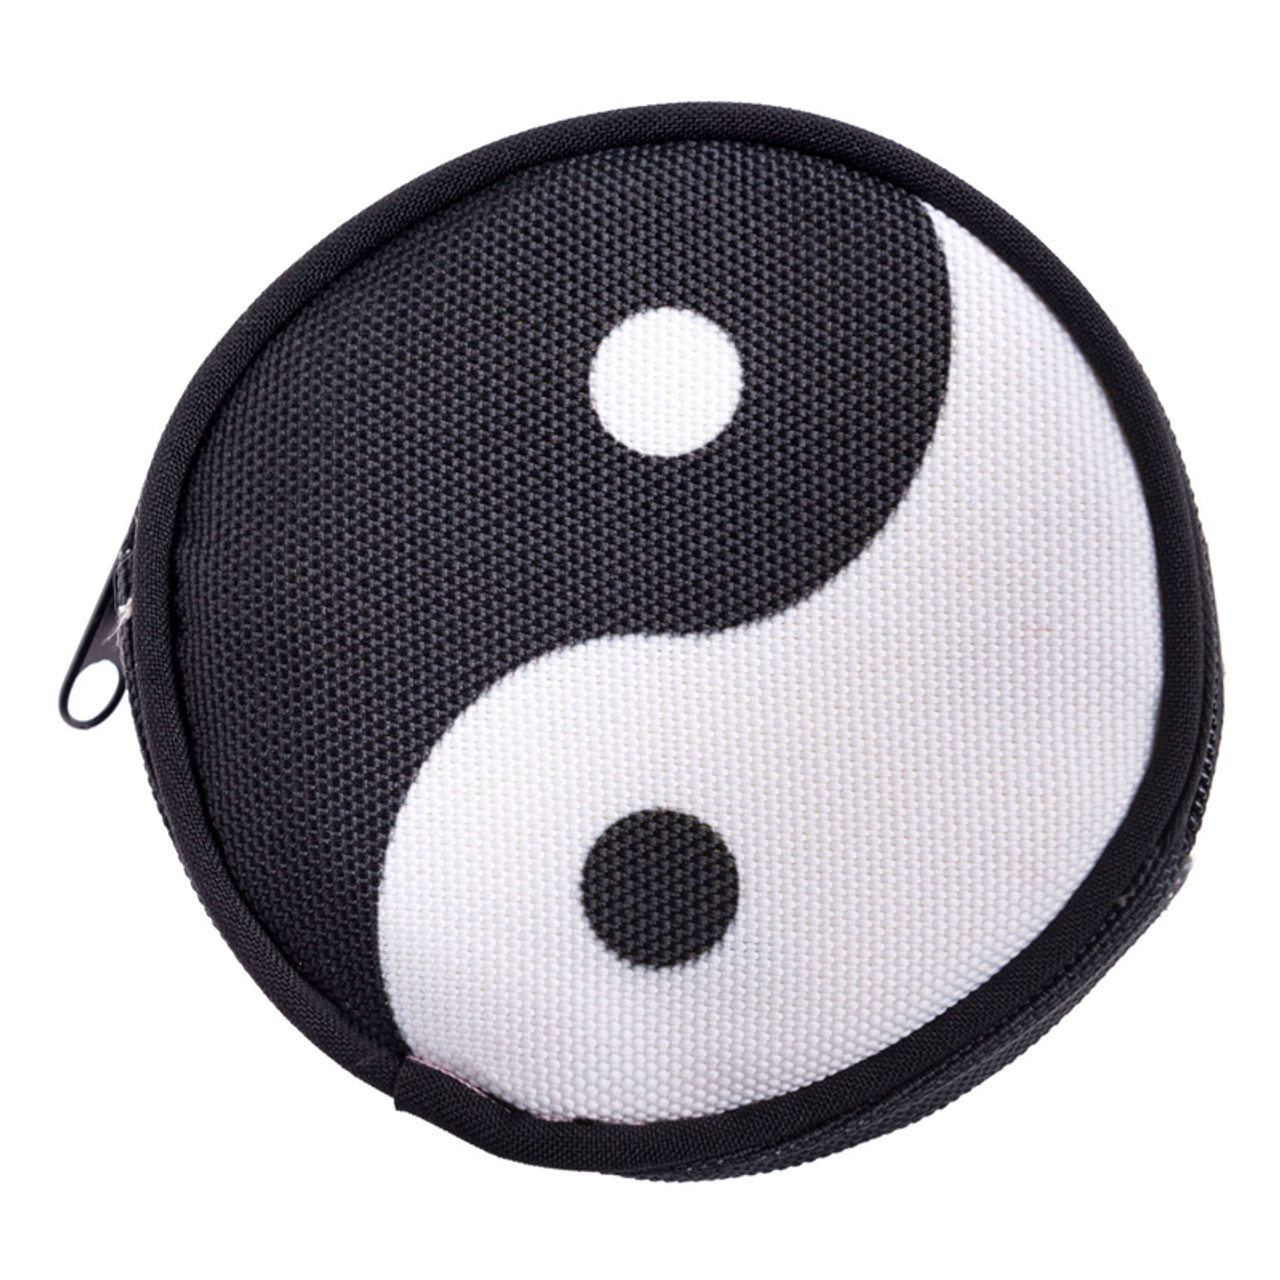 Yin Yang Round Graphic Print Coin Purse - 18 Styles